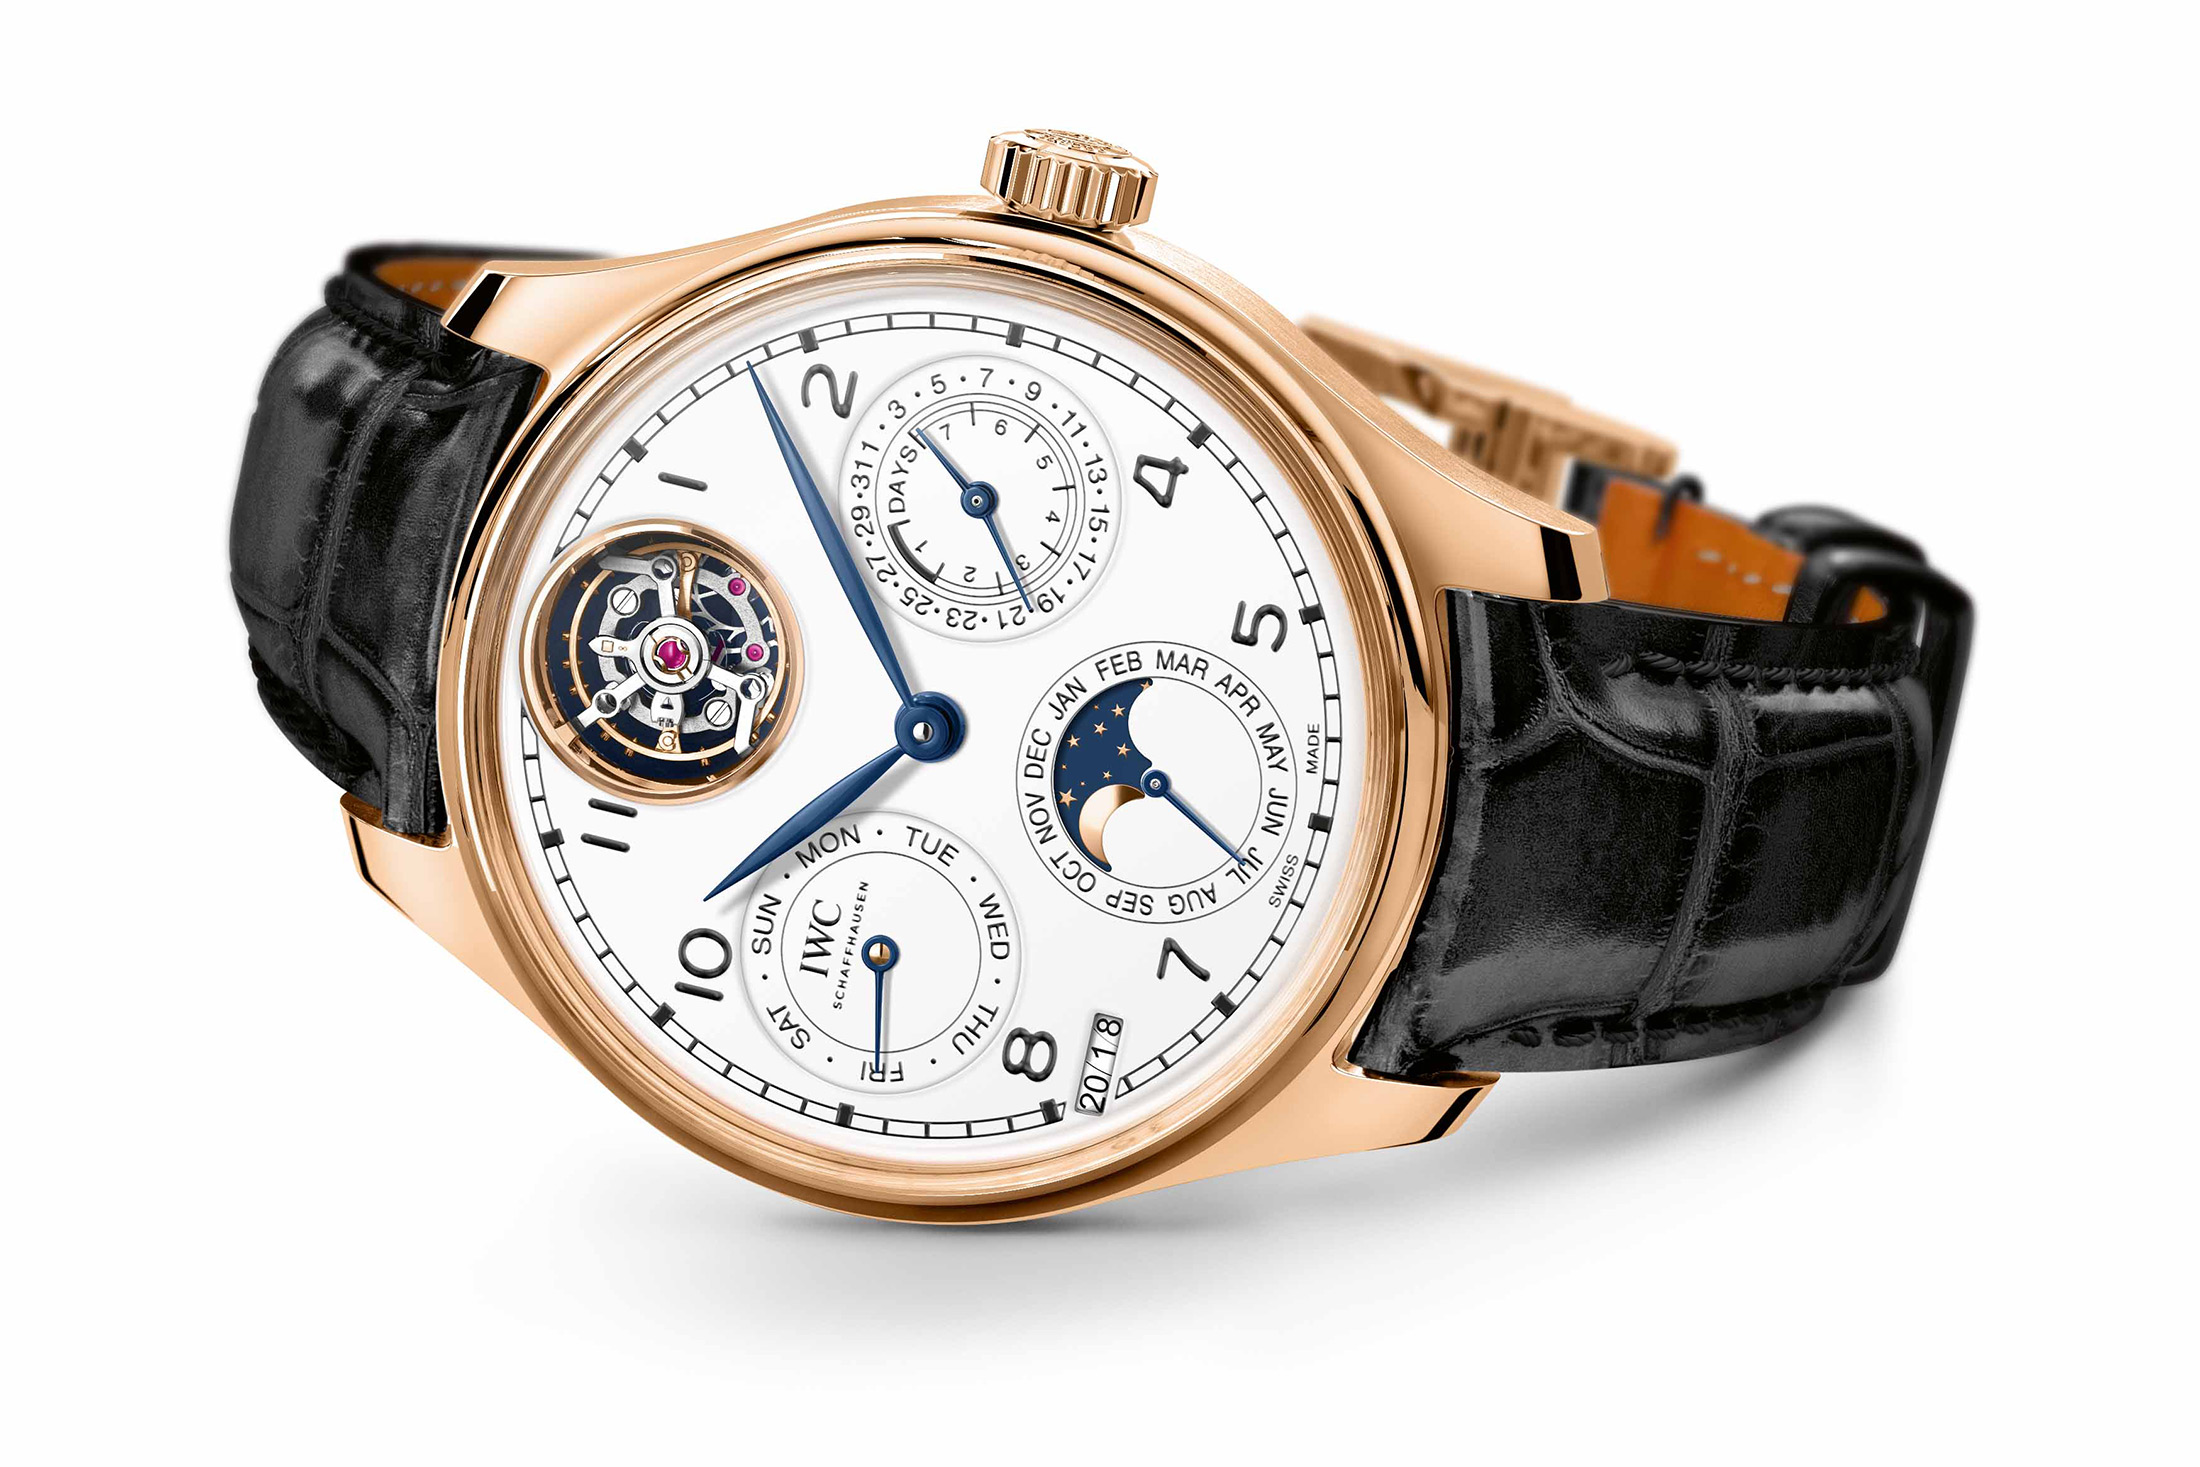 Introducing: The IWC Jubilee 150th Anniversary Collection